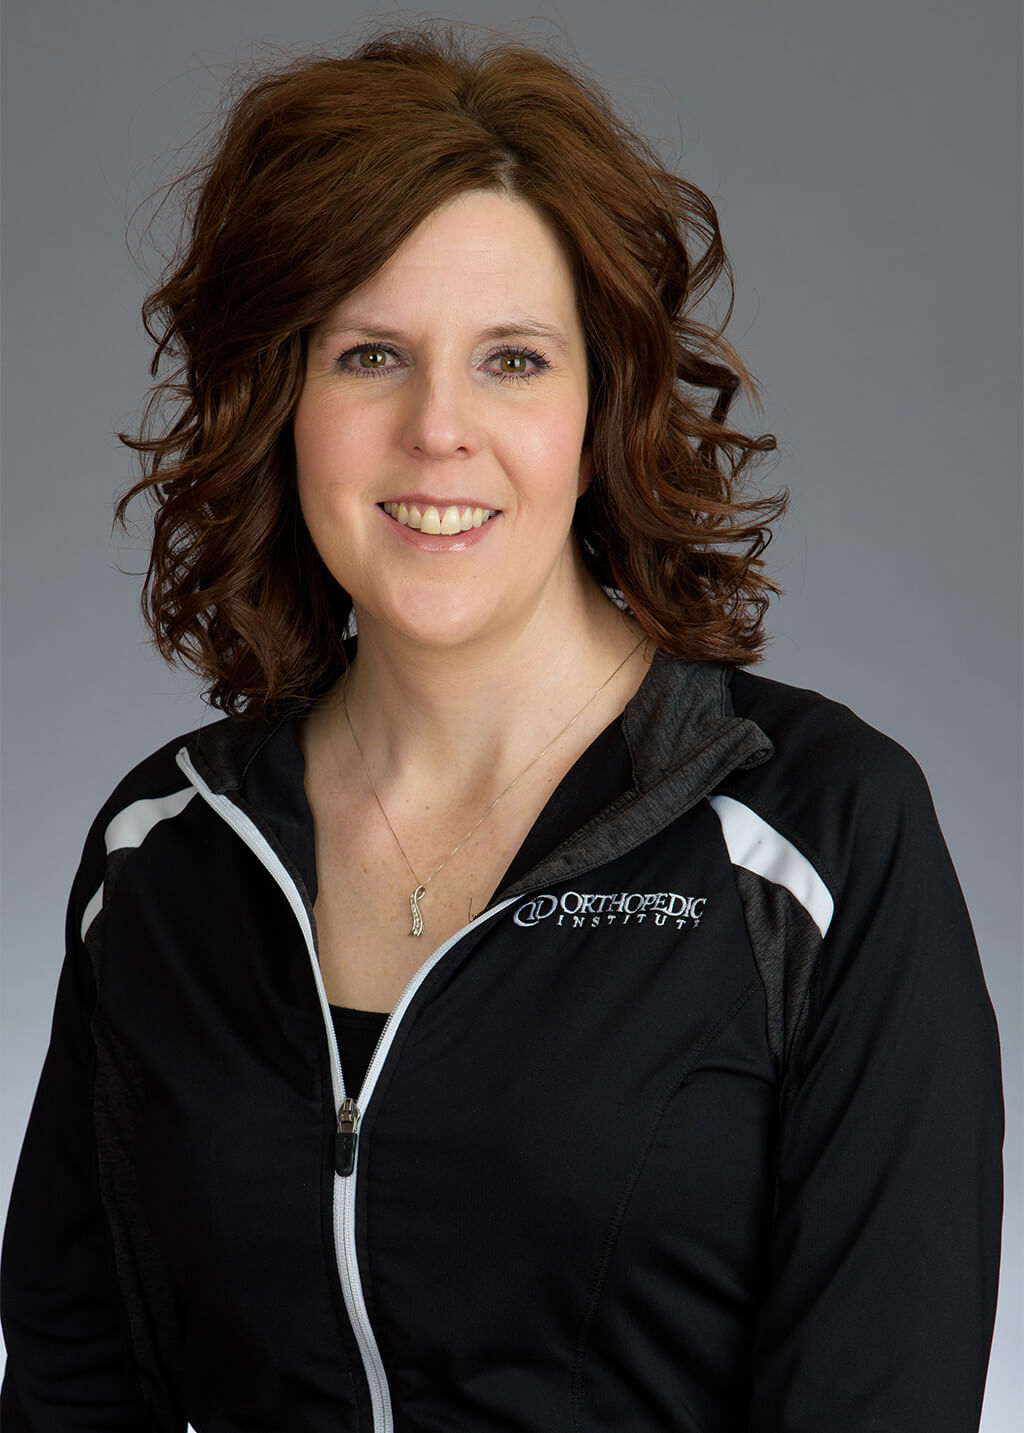 Shelly Price, DPT, ATC